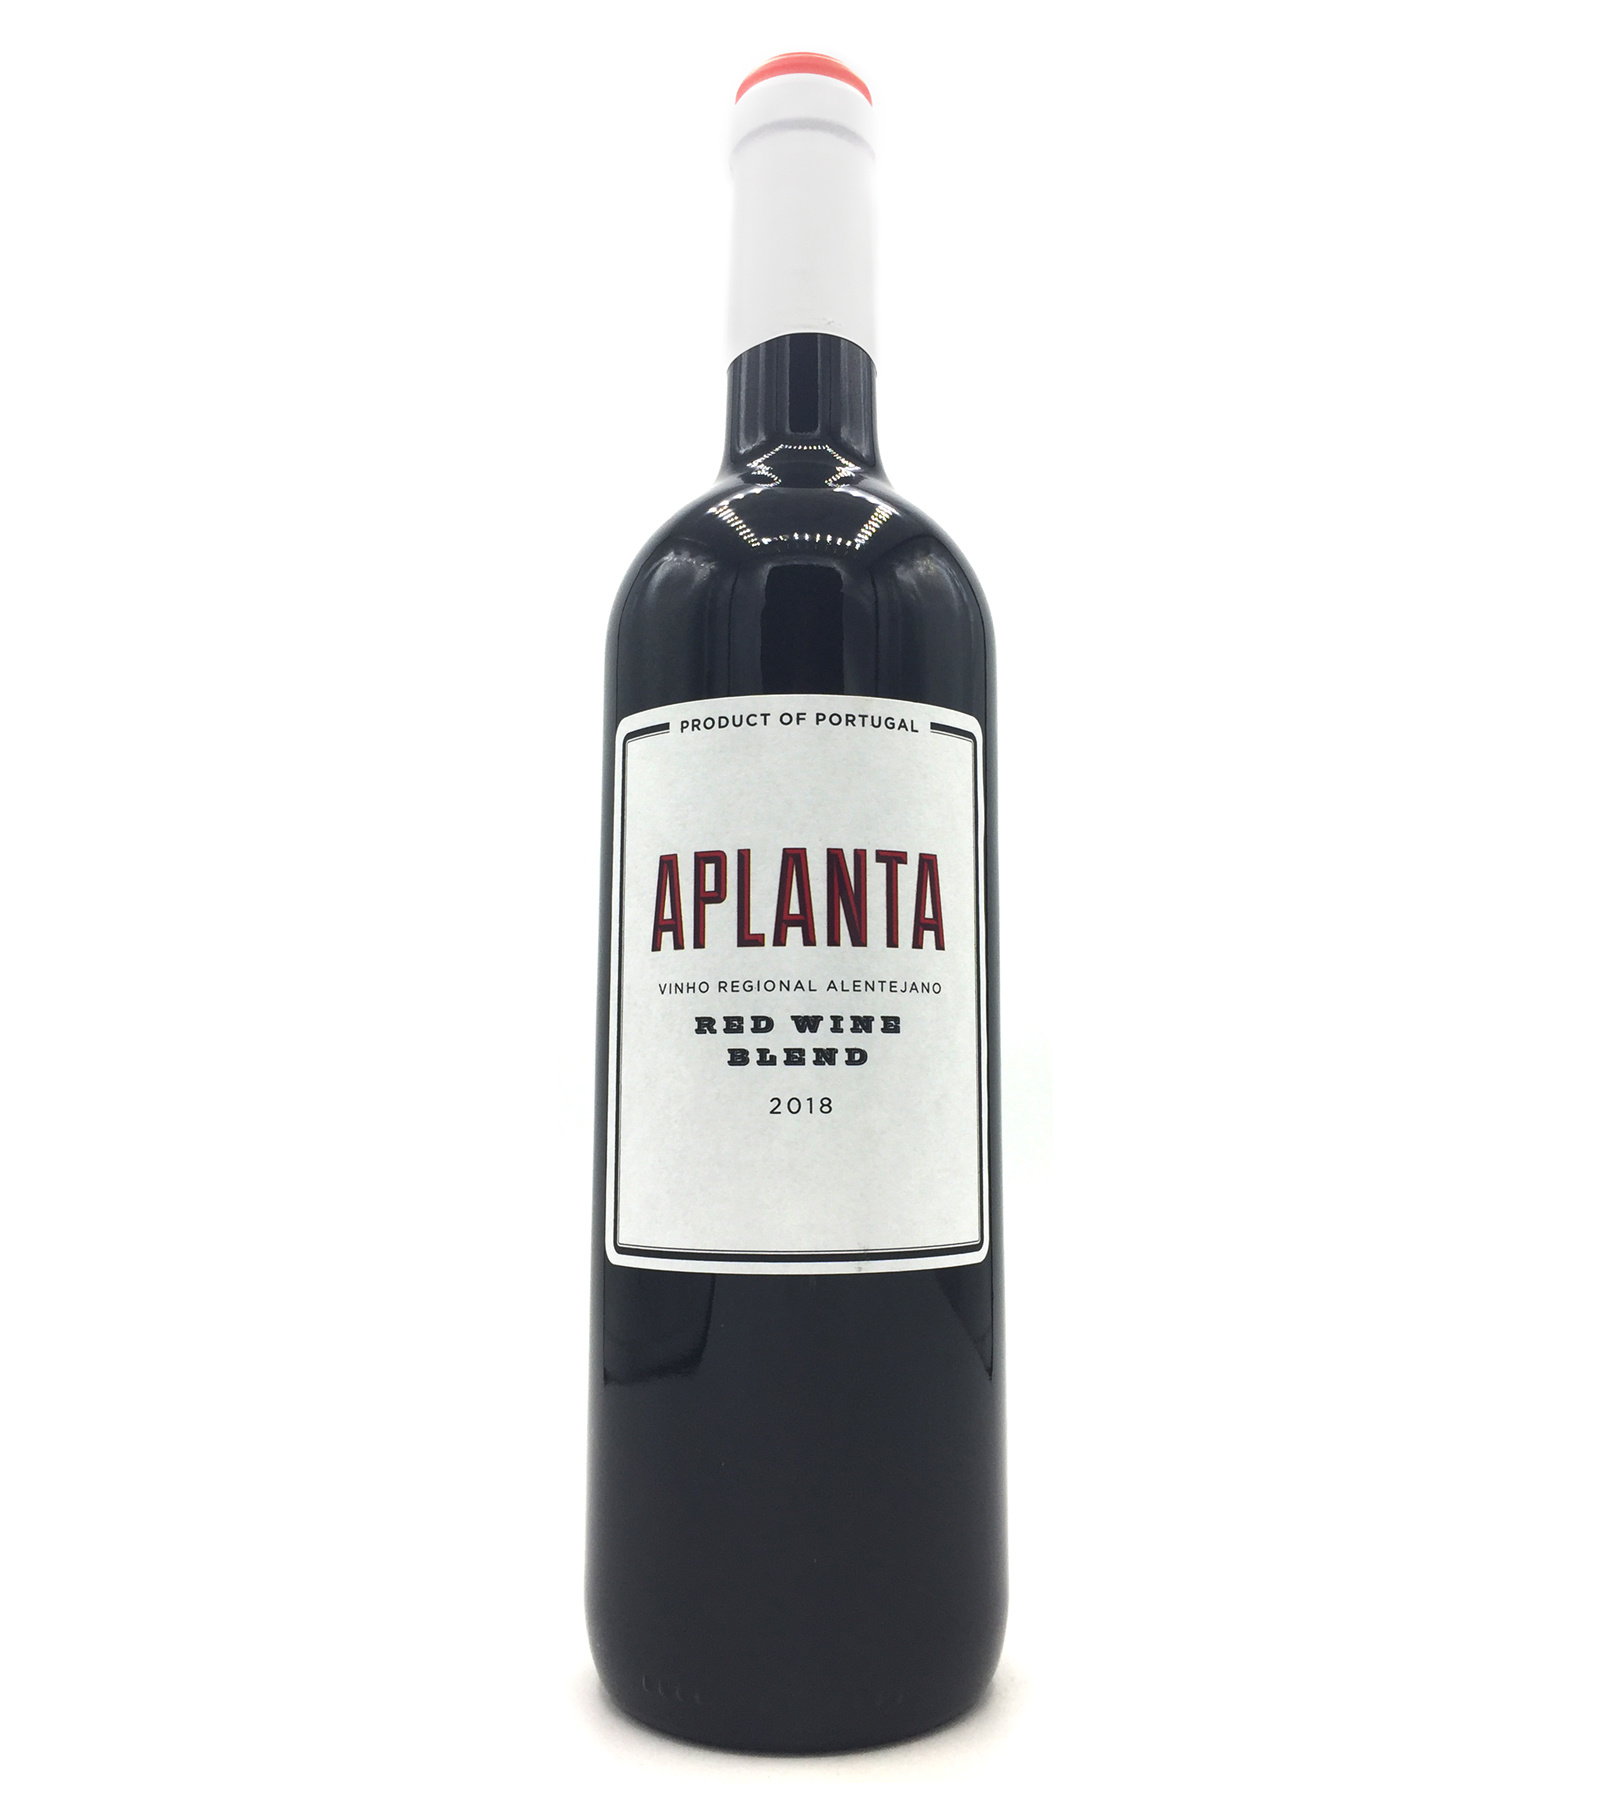 Red Wine Blend 2018 Aplanta